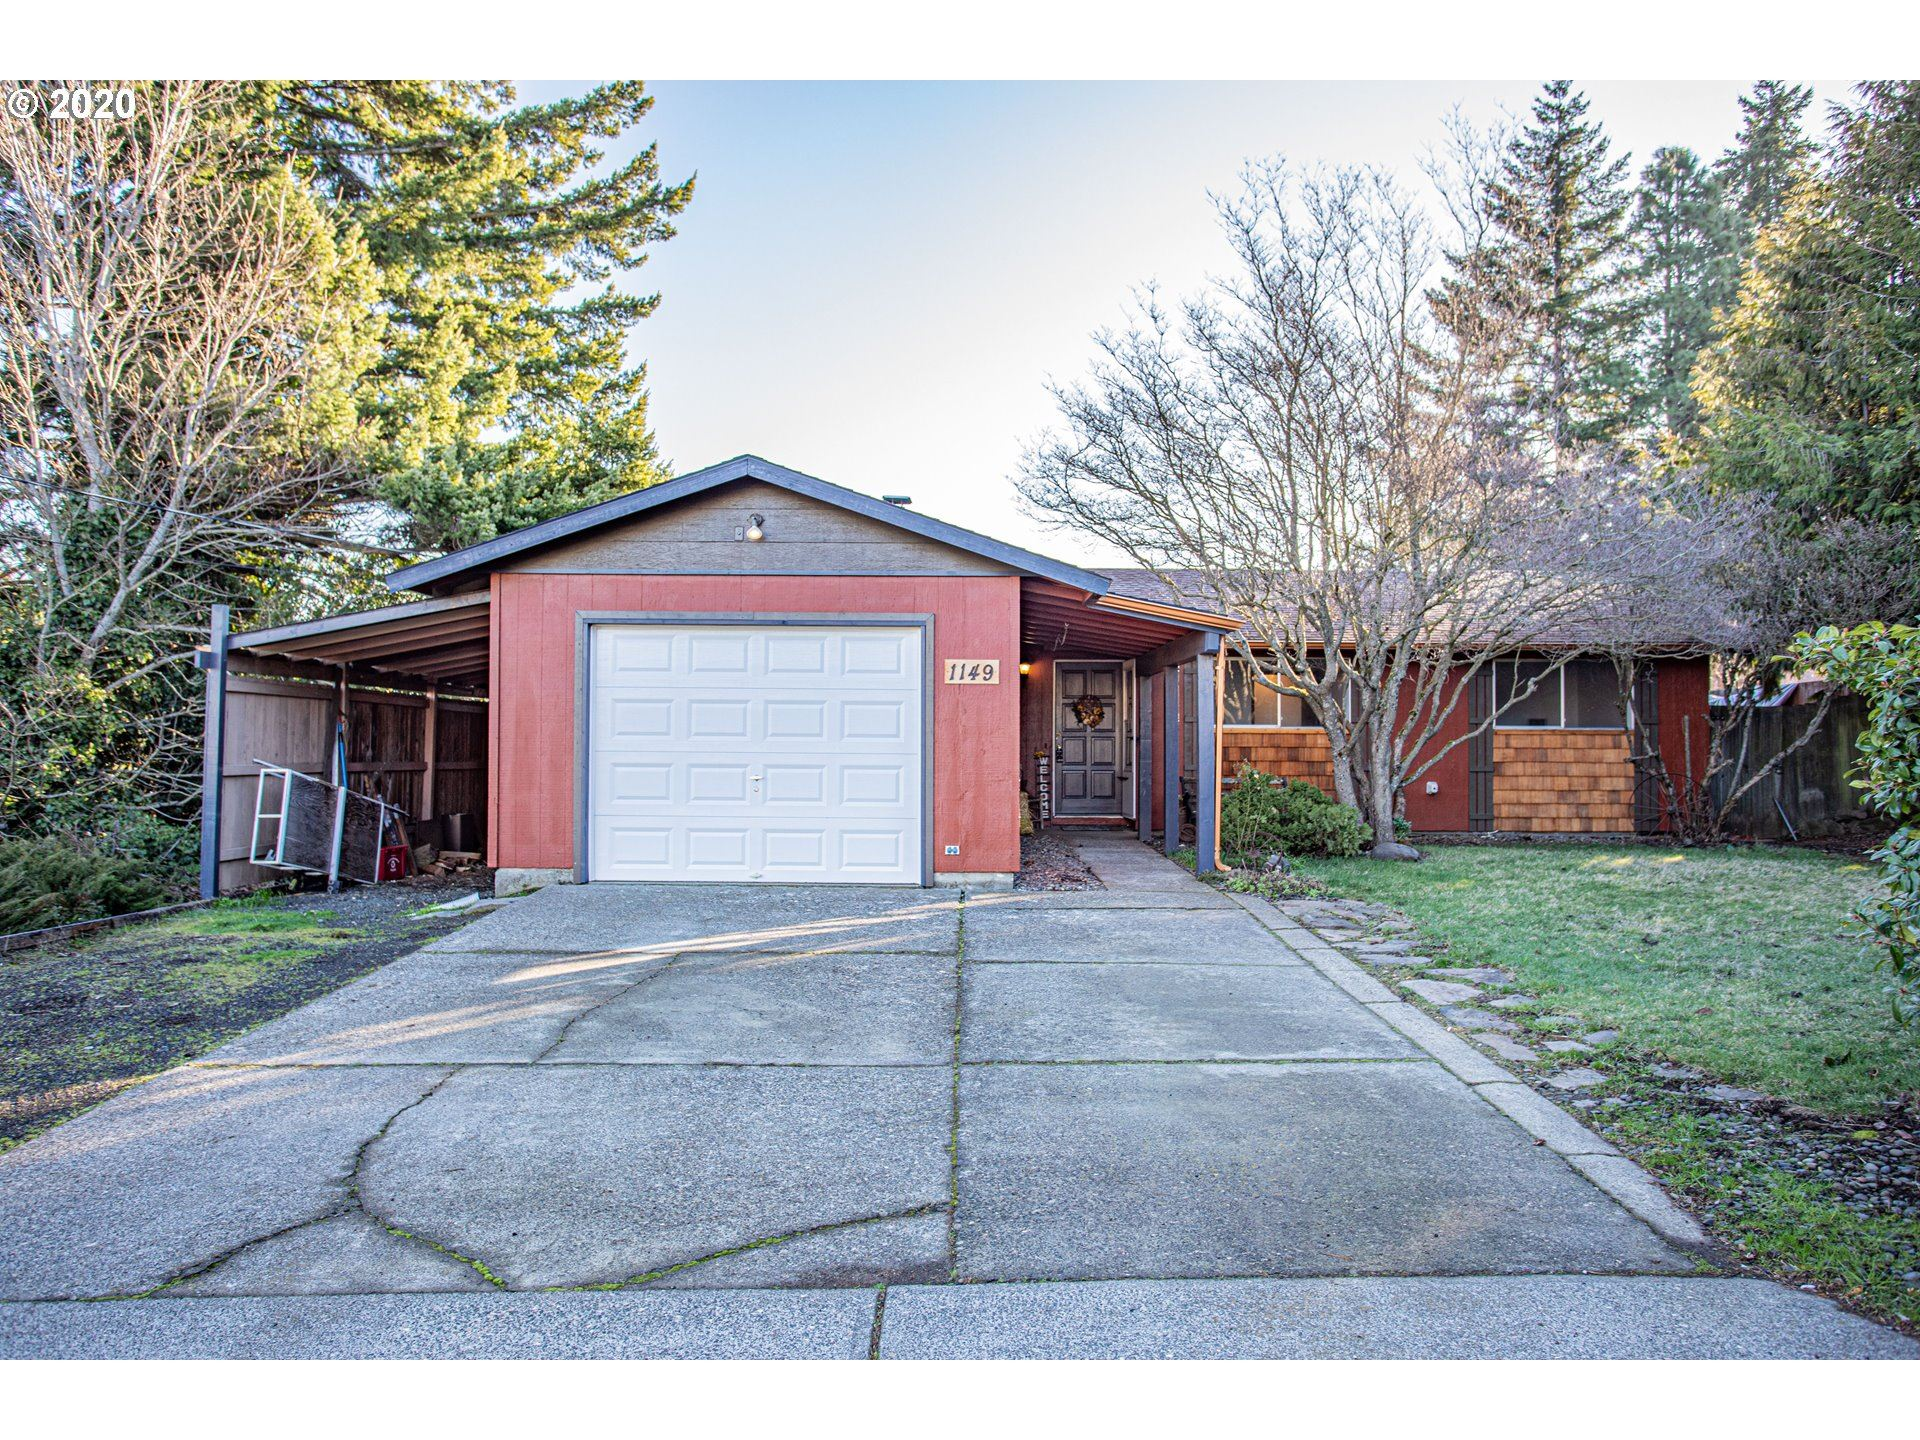 Photo of 1149 22ND ST, Hood River, OR 97031 (MLS # 20285204)